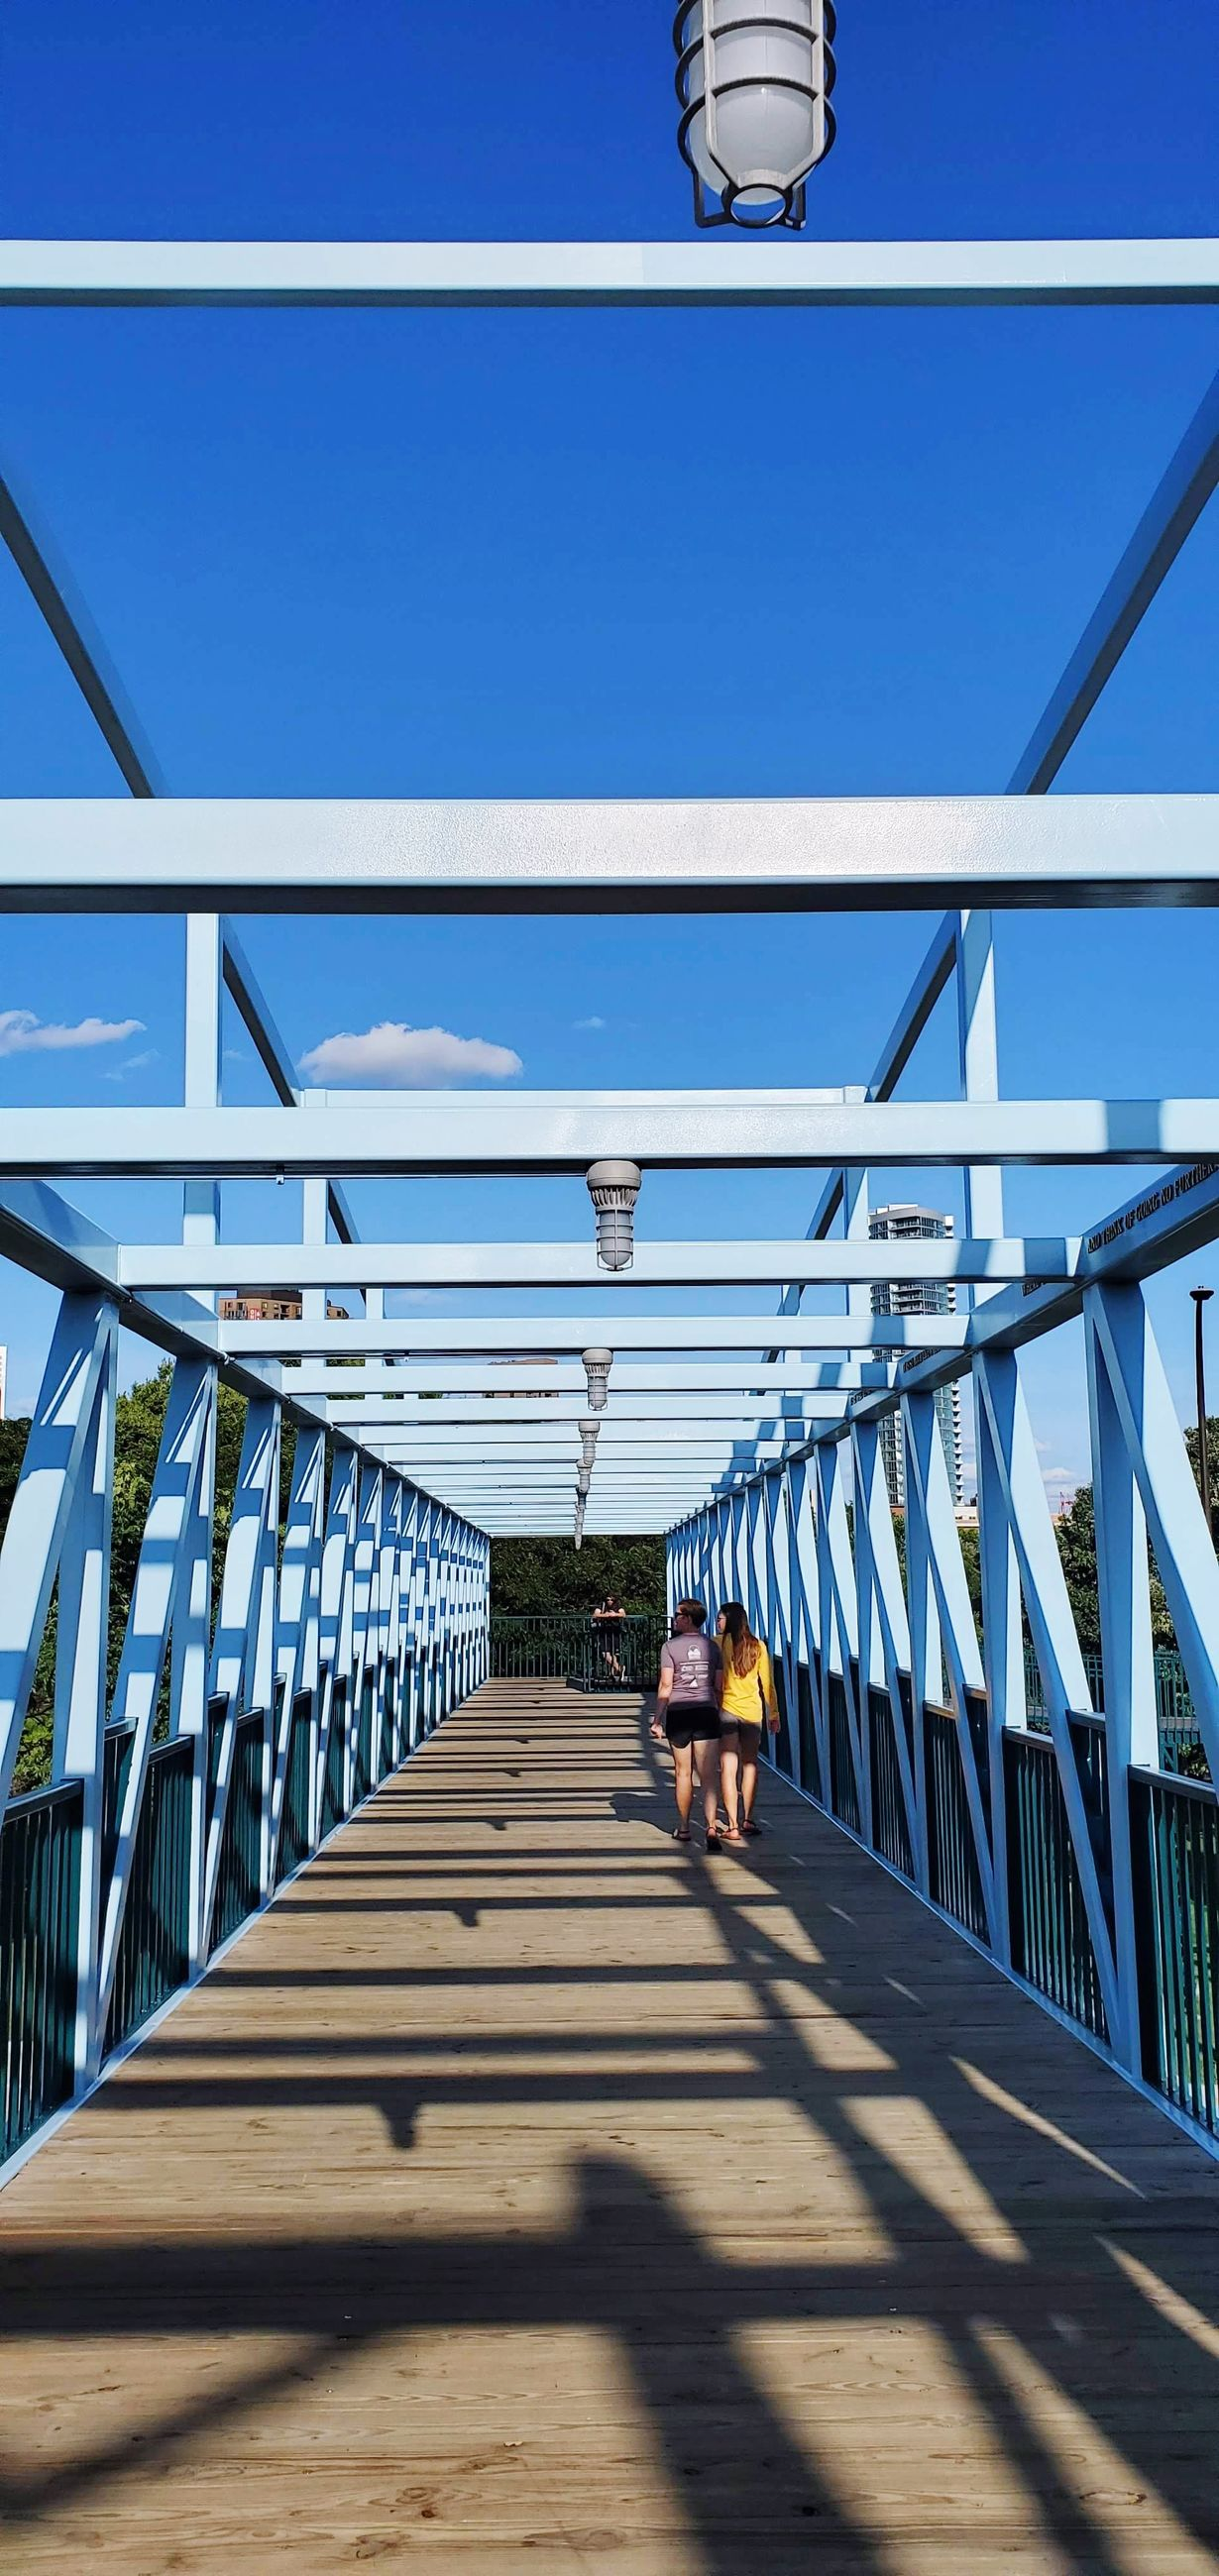 architecture, built structure, railing, sunlight, shadow, the way forward, one person, direction, real people, bridge, lifestyles, nature, sky, footbridge, day, men, bridge - man made structure, connection, full length, outdoors, diminishing perspective, ceiling